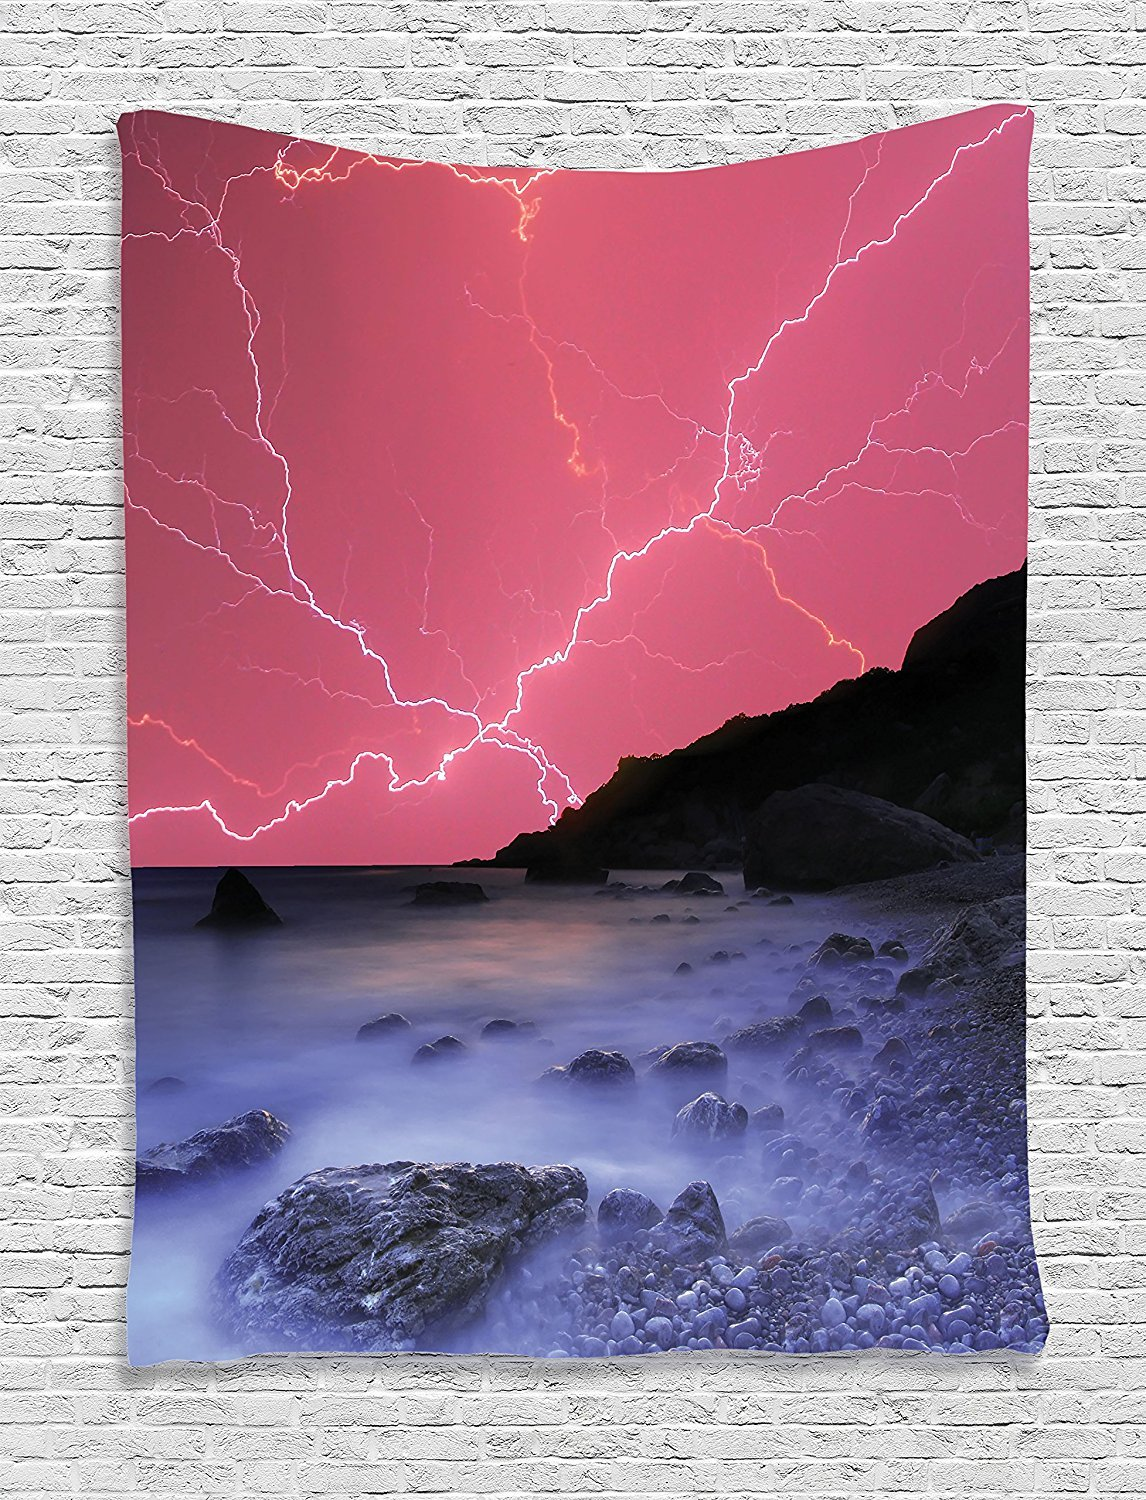 asddcdfdd Lake House Decor Tapestry, Thunderstorm Bolts With Vivid Colorful Sky Like Solar Lights Phenomenal Nature Picture, Bedroom Living Room Dorm Decor, 40 W x 60 L Inches, Pink Grey by asddcdfdd (Image #1)